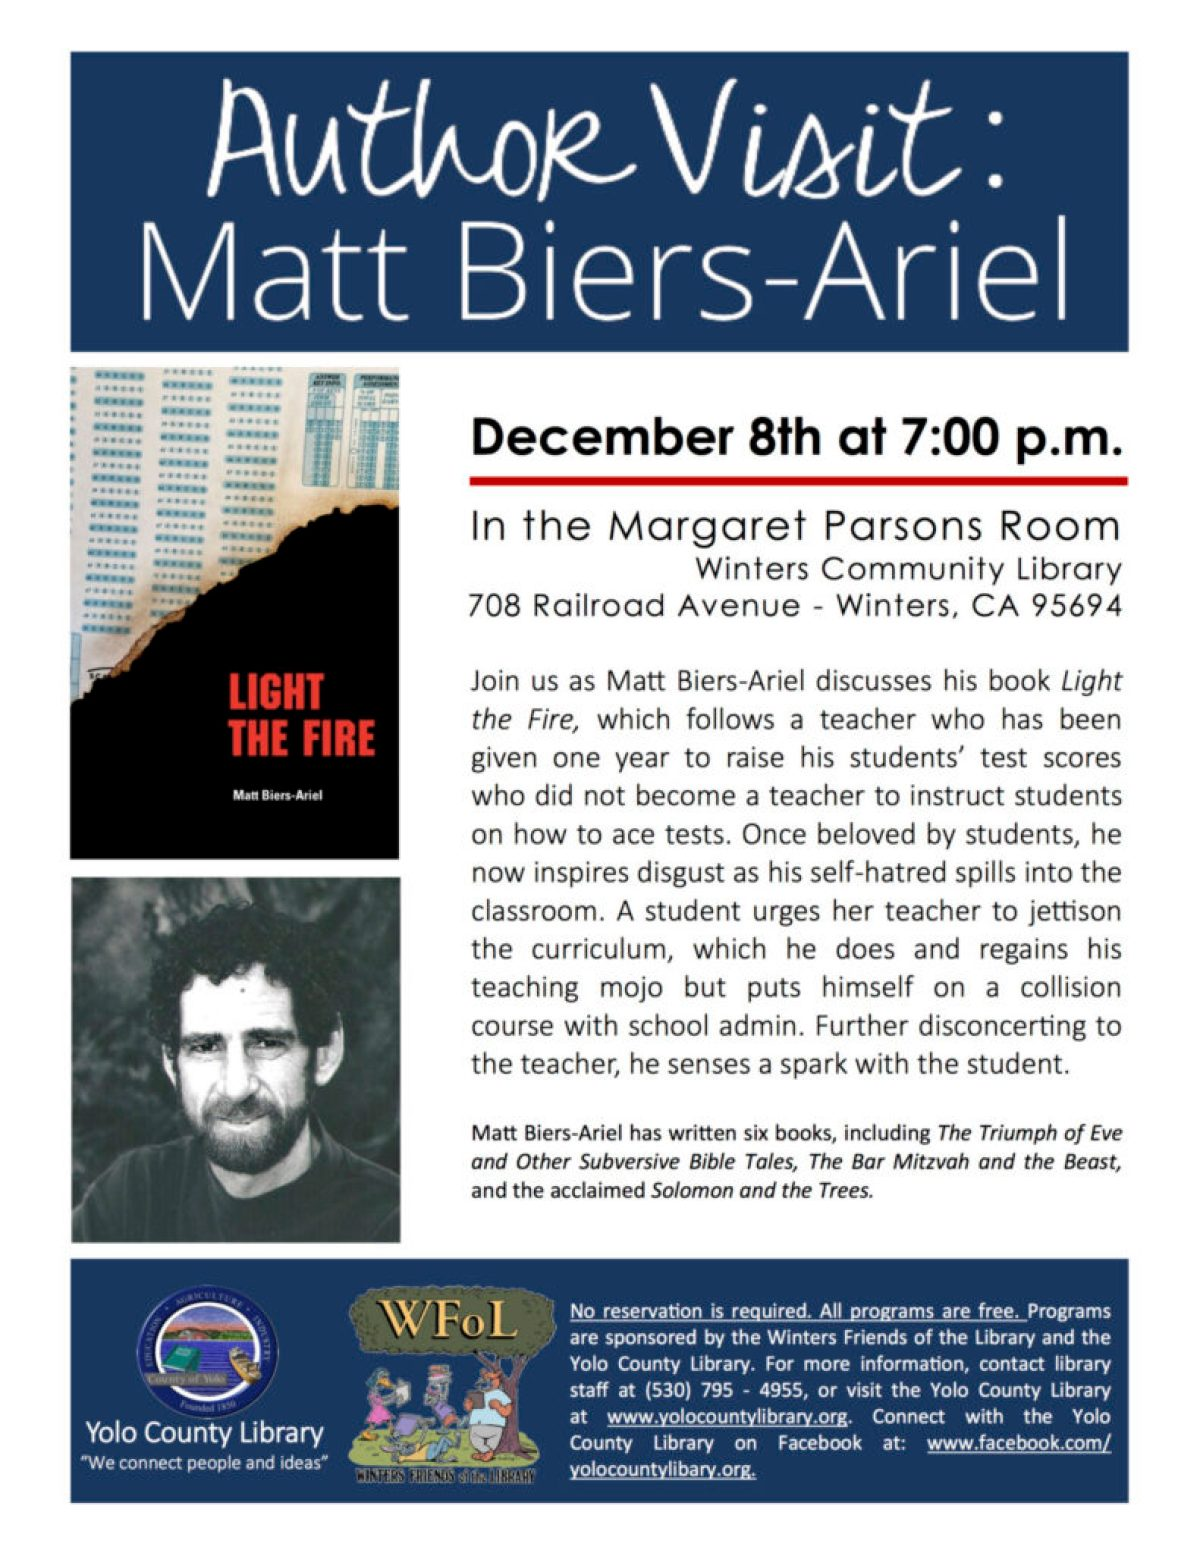 2016-author-visit-matt-biers-ariel-updated-time-1